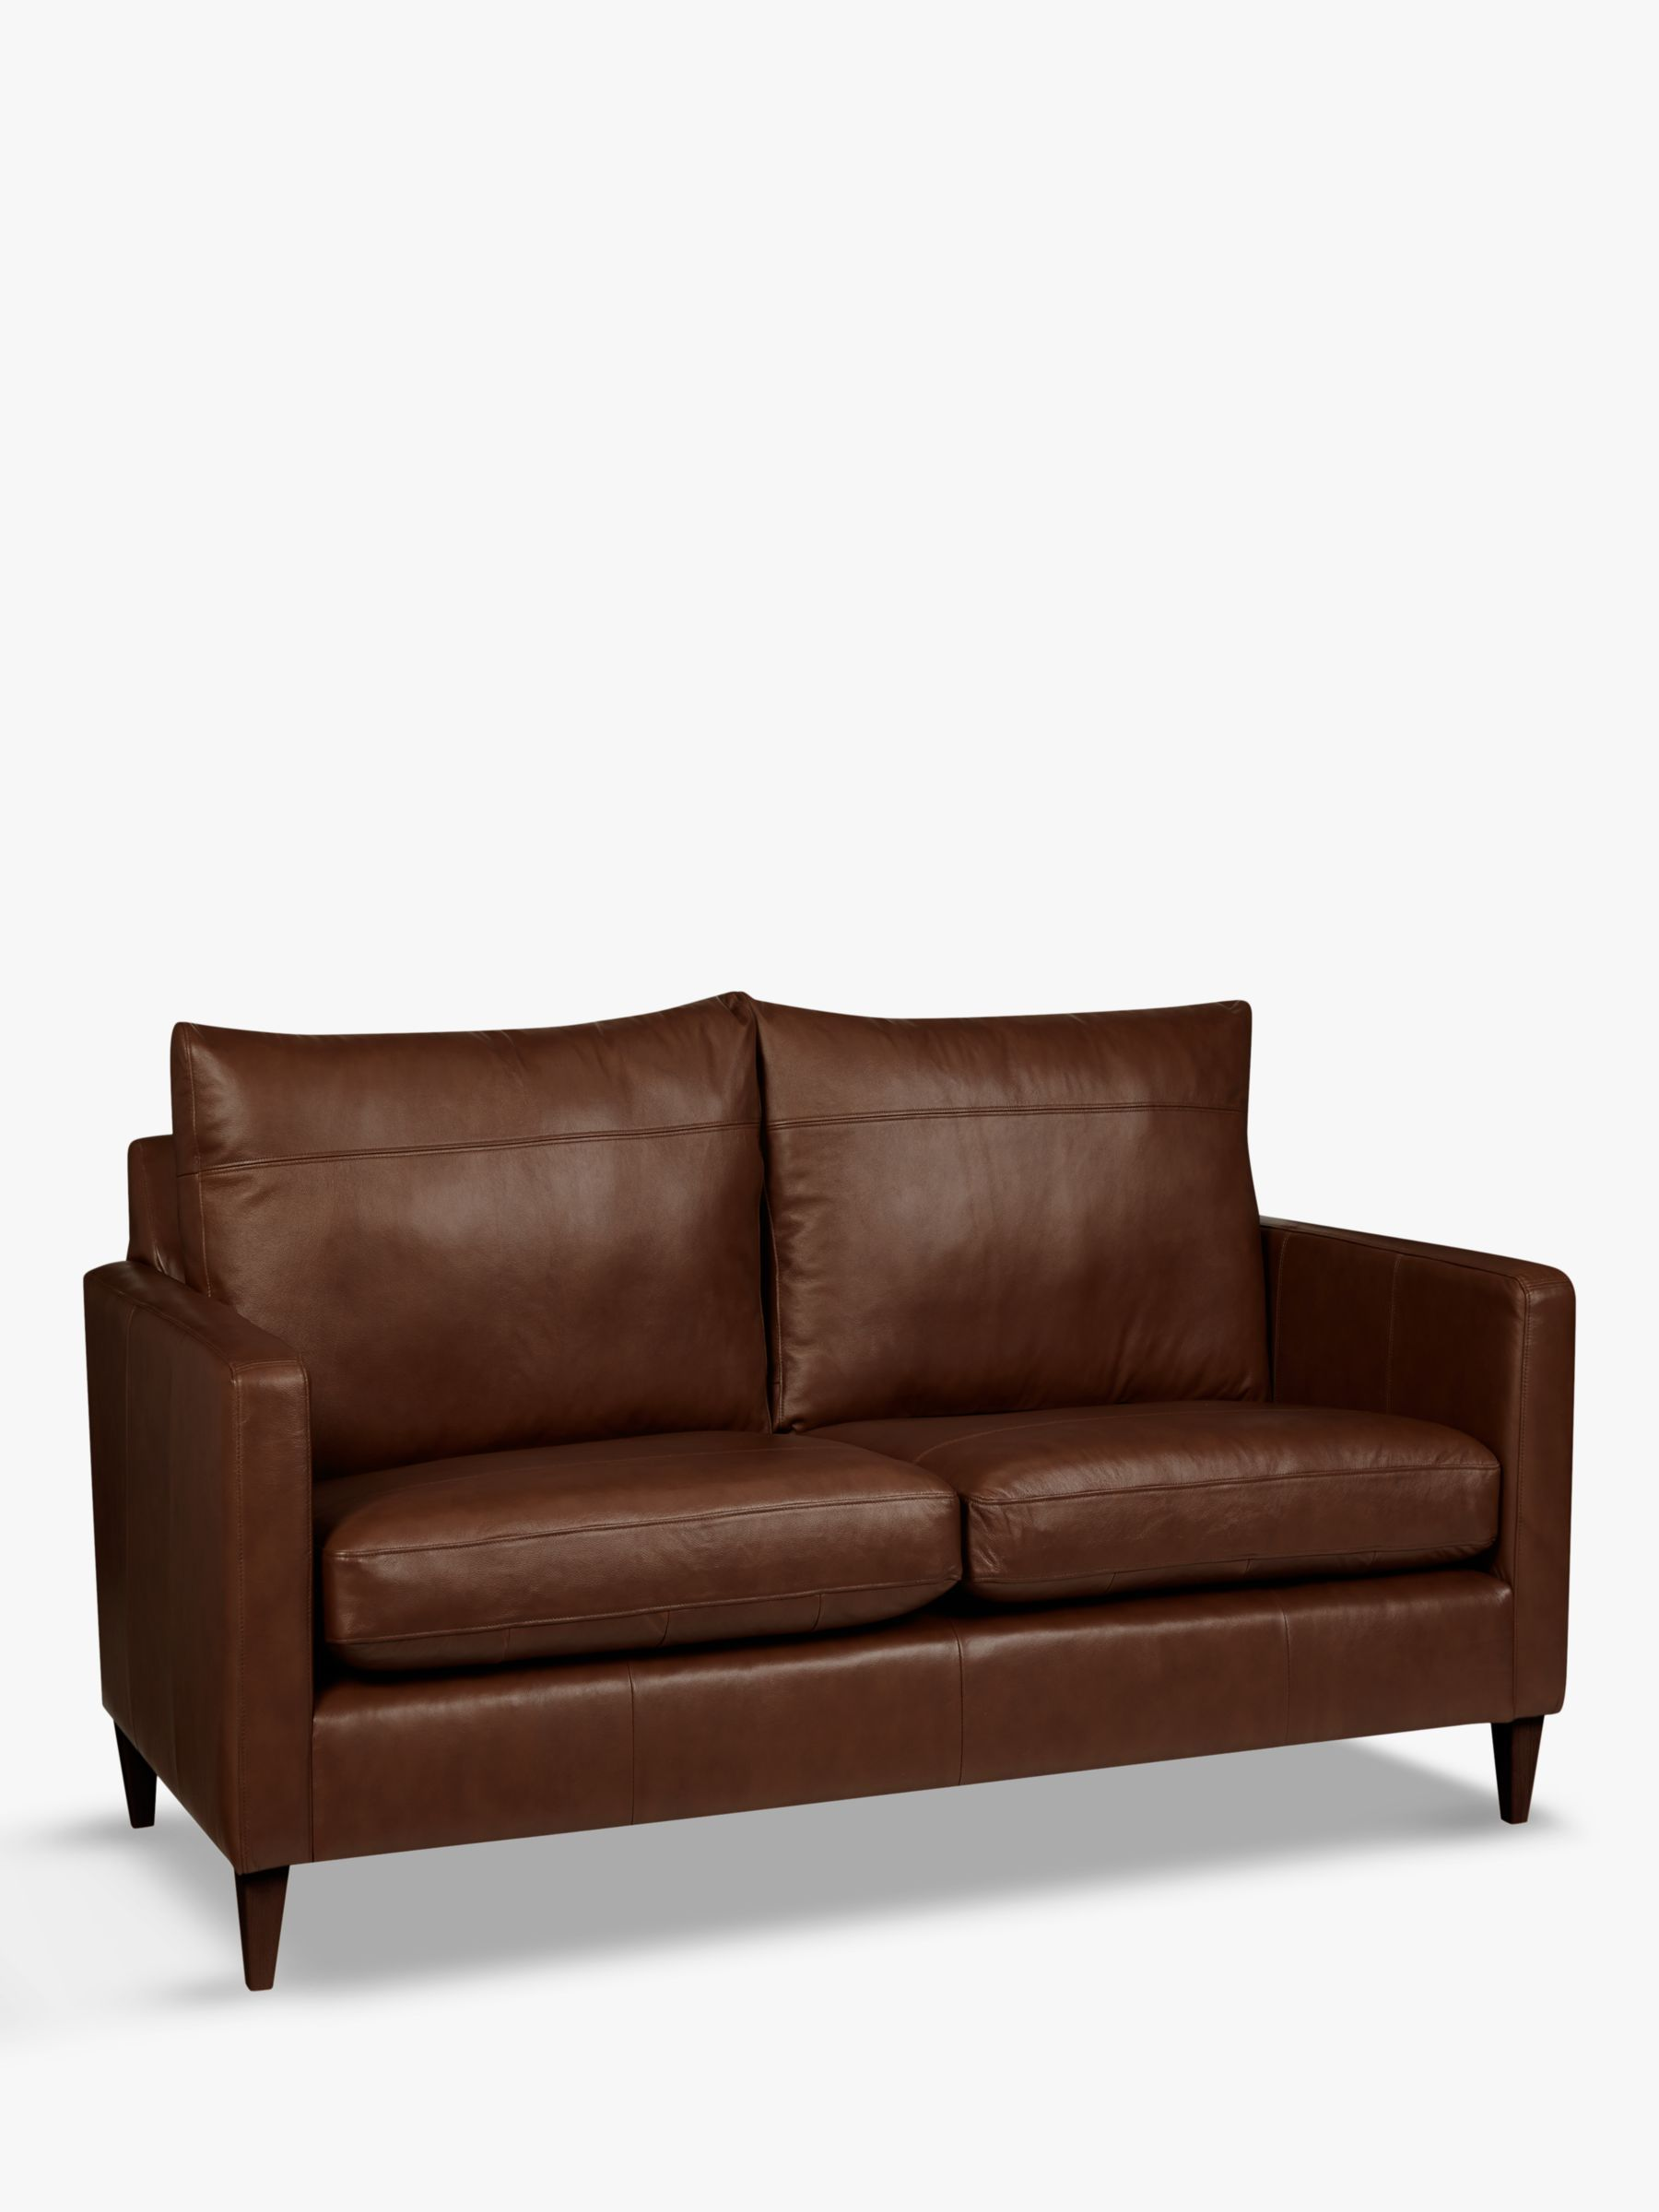 John Lewis Partners Bailey Small 2 Seater Leather Sofa Dark Leg Leather Sofa Sofa 2 Seater Sofa